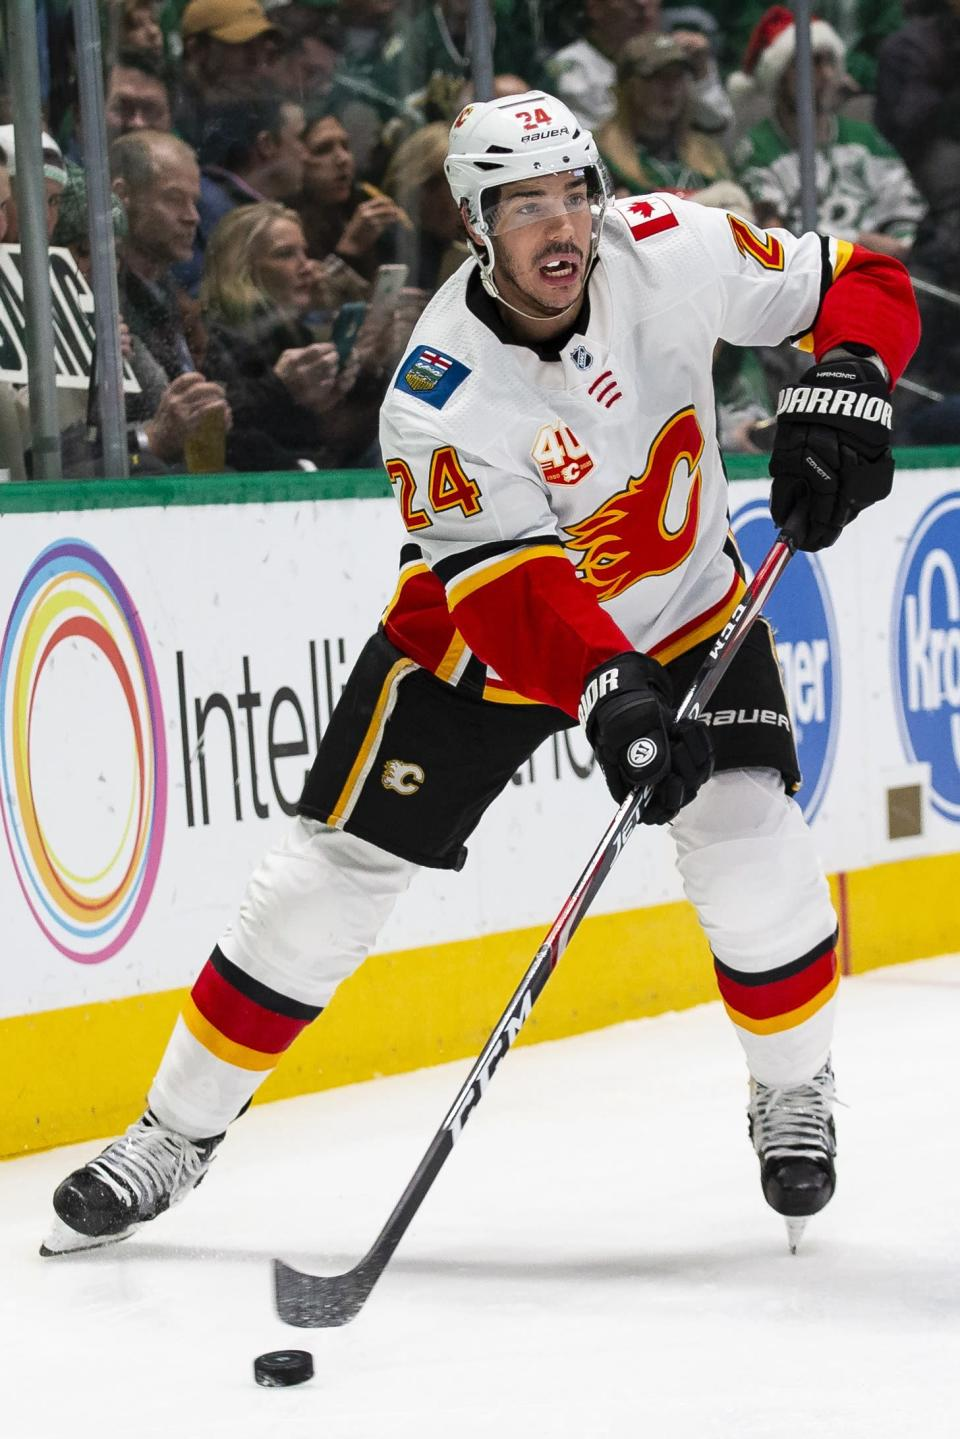 Calgary Flames defenseman Travis Hamonic (24) looks to pass the puck during the first period of an NHL hockey game against the Dallas Stars, Sunday, Dec. 22, 2019, in Dallas. (AP Photo/Sam Hodde)